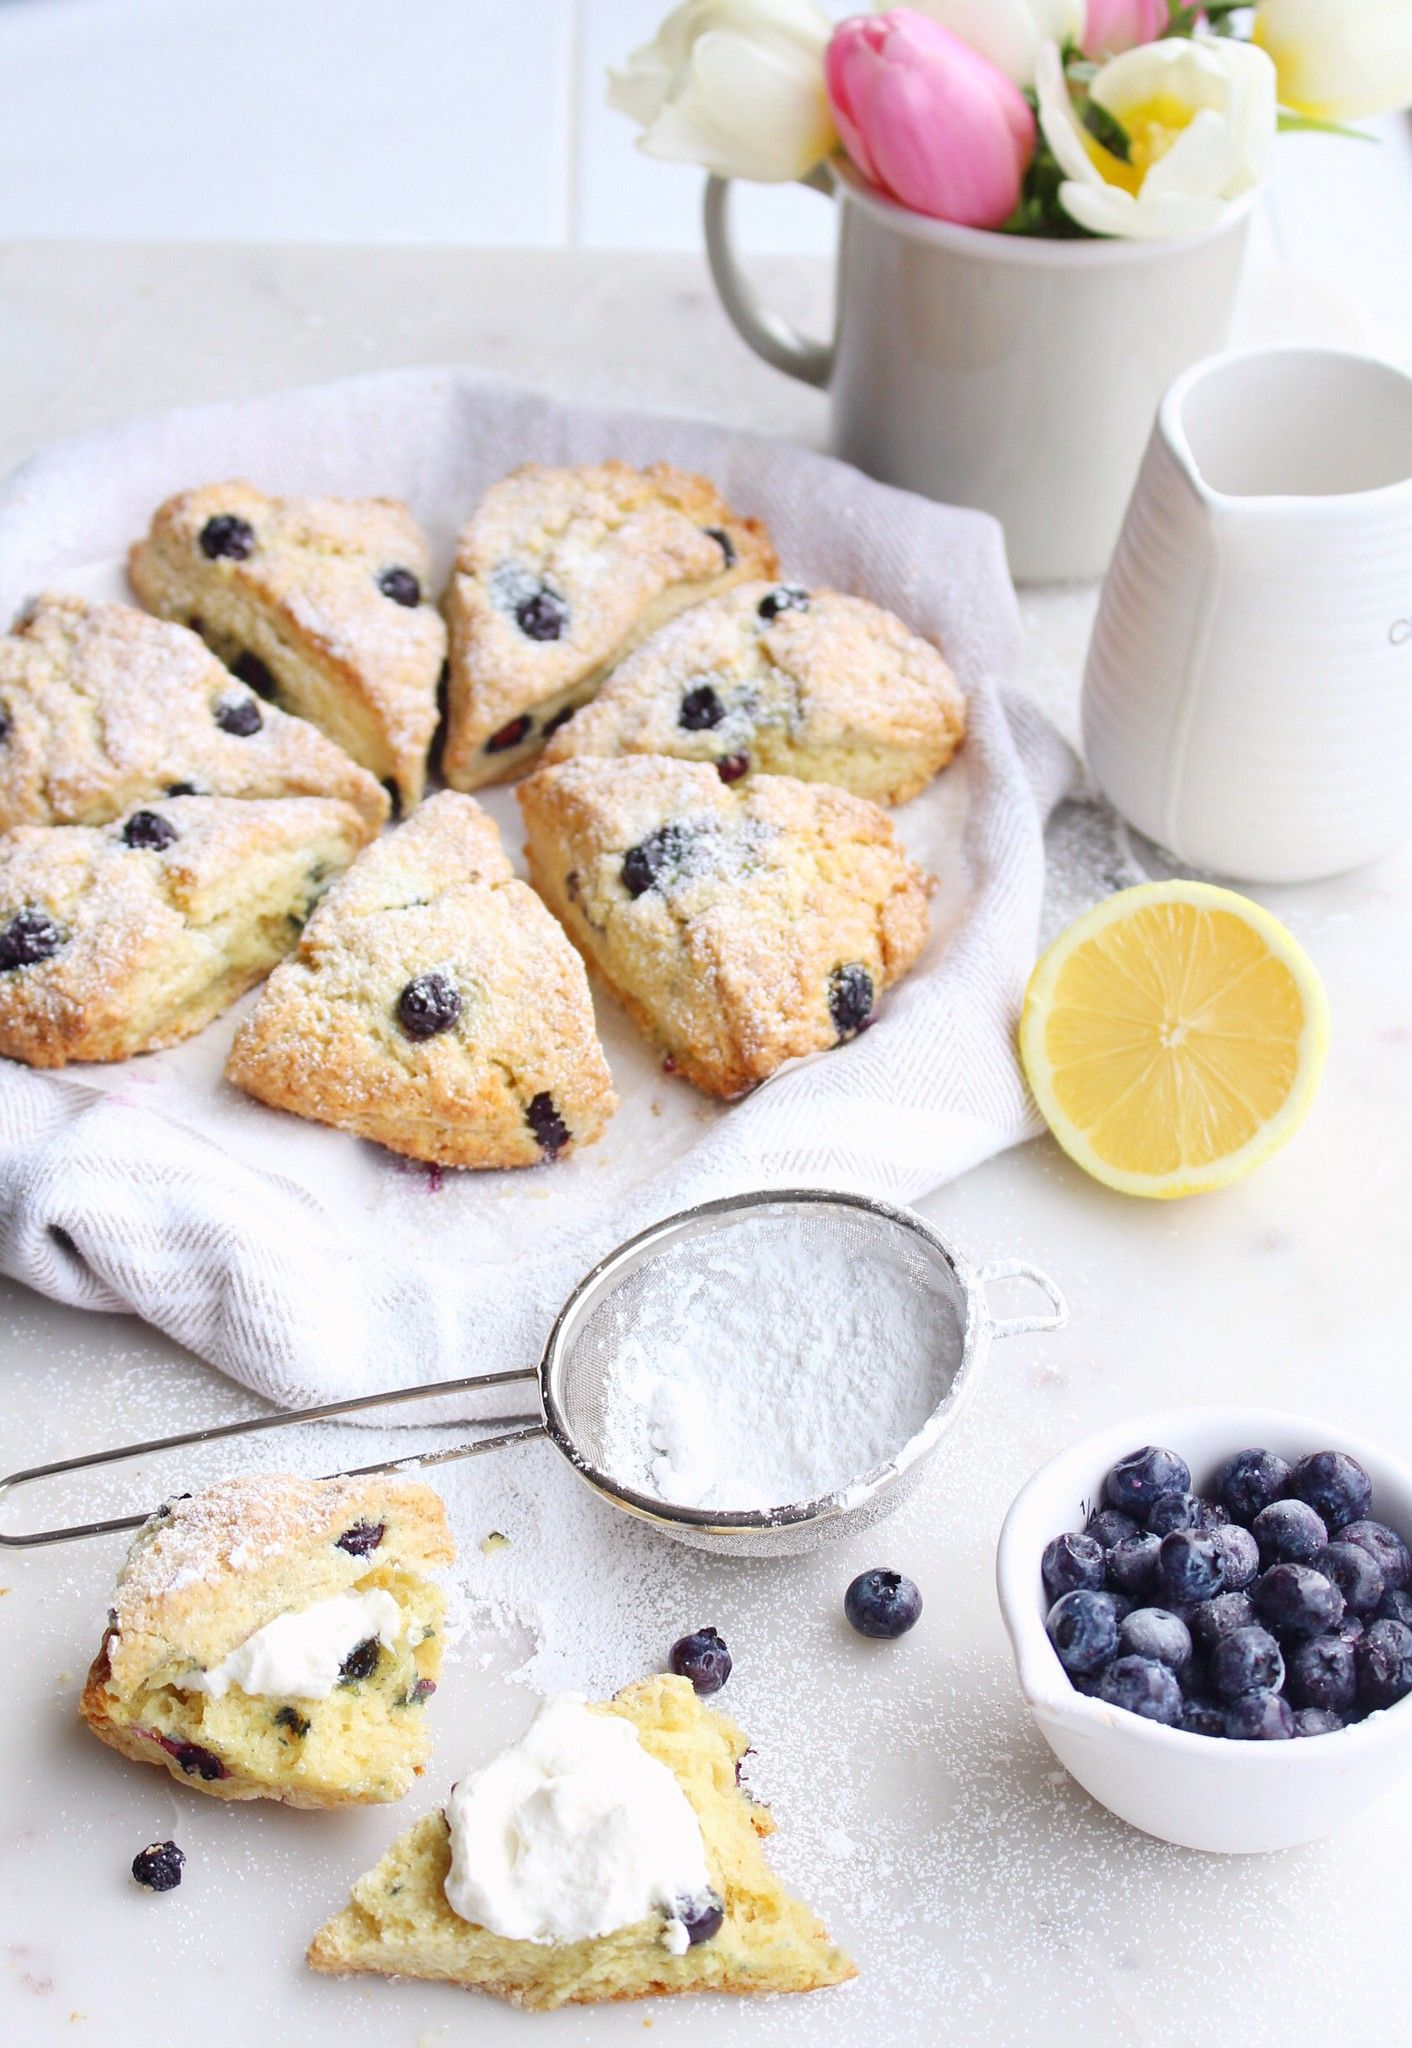 Blueberry Sour Cream Scones The Sweet And Simple Kitchen Sour Cream Scones Scone Recipe With Sour Cream Sour Cream Recipes